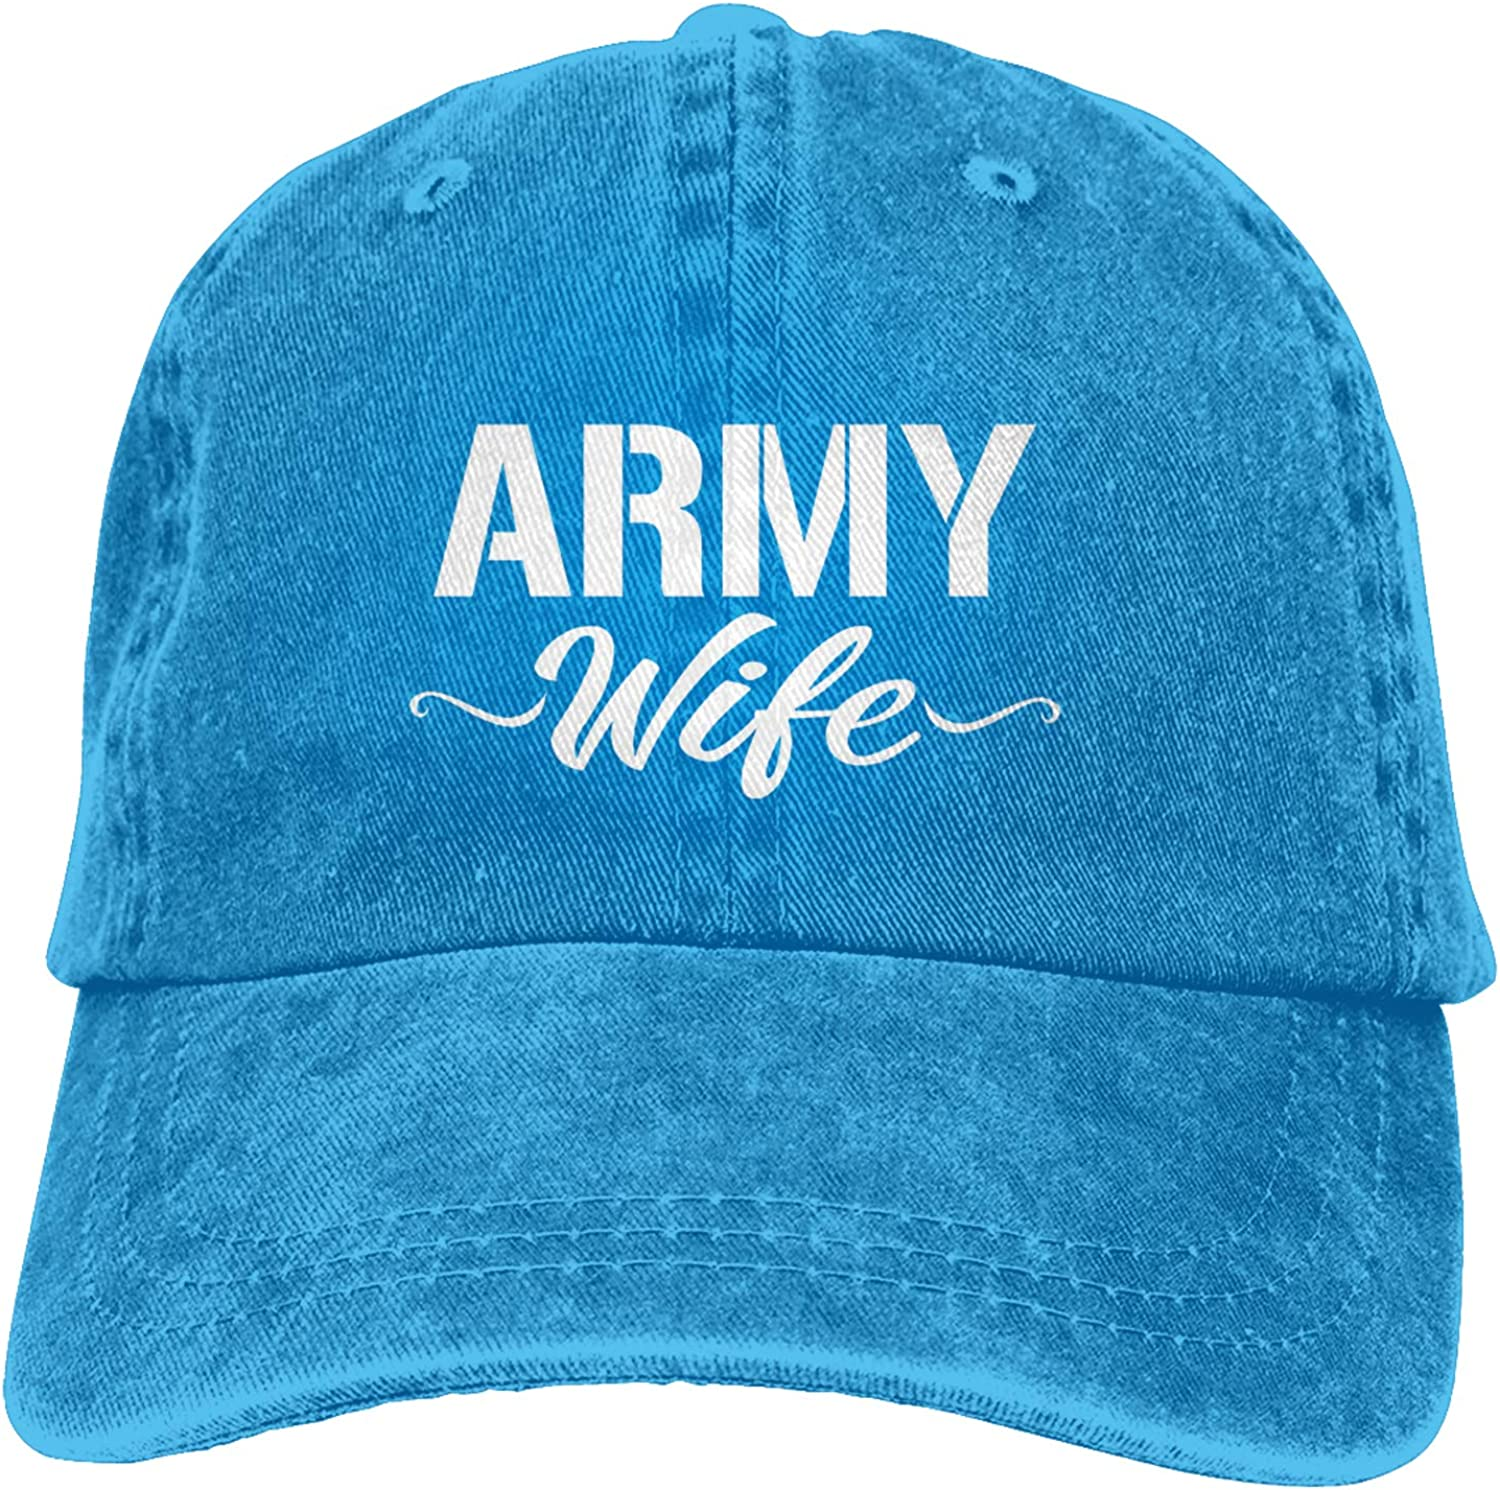 Kritin Proud Army Wife Hat US Army Solider Baseball Adjustable Army Wife Trucker Dad Hat